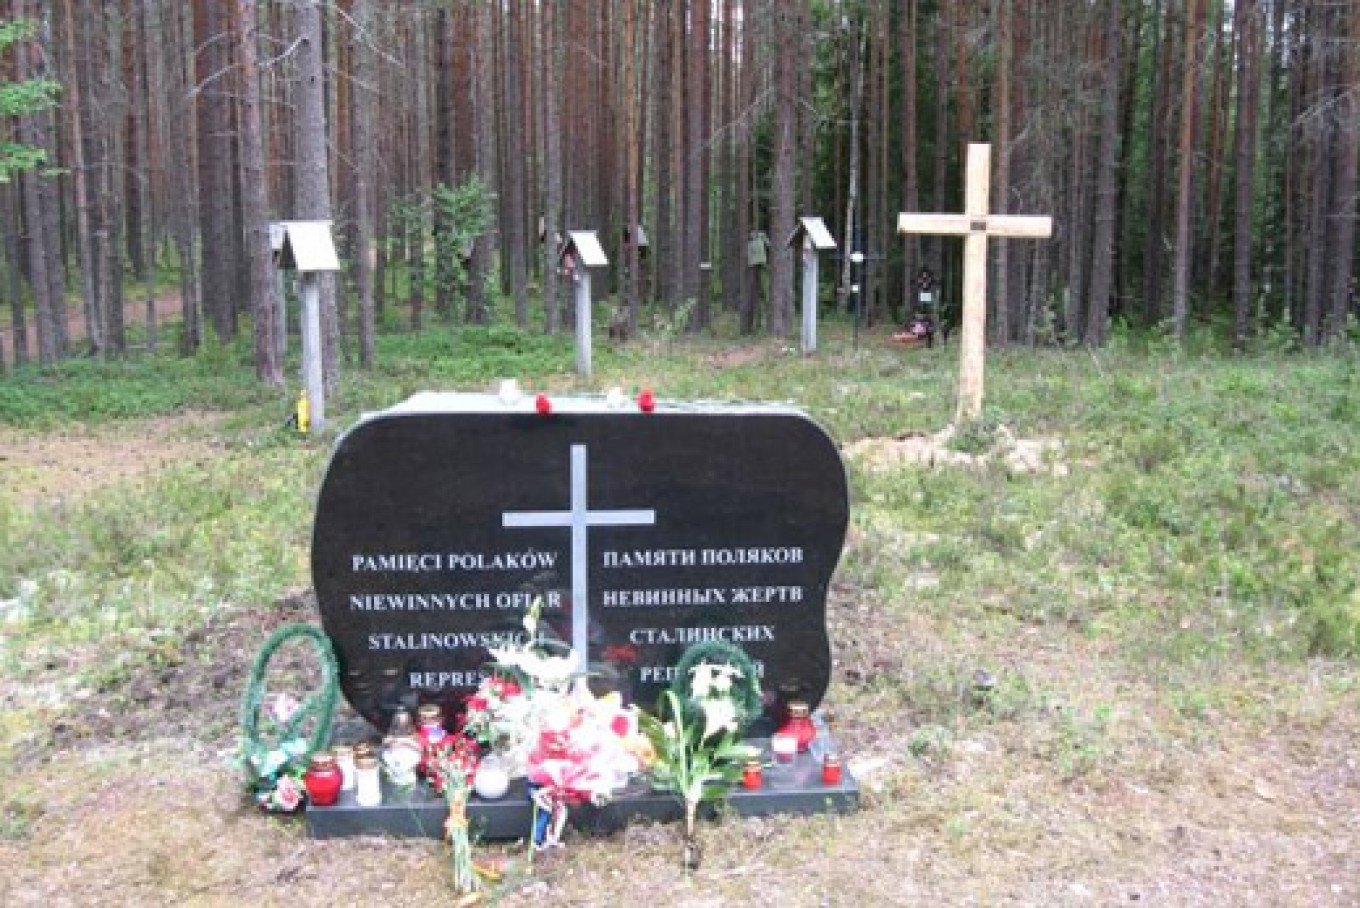 Among the victims of Stalin's terror in Sandarmokh are Russians, Ukrainians, Poles, Finns, Germans, Jews - more than 50 nationalities overall.  www.solovki.ca